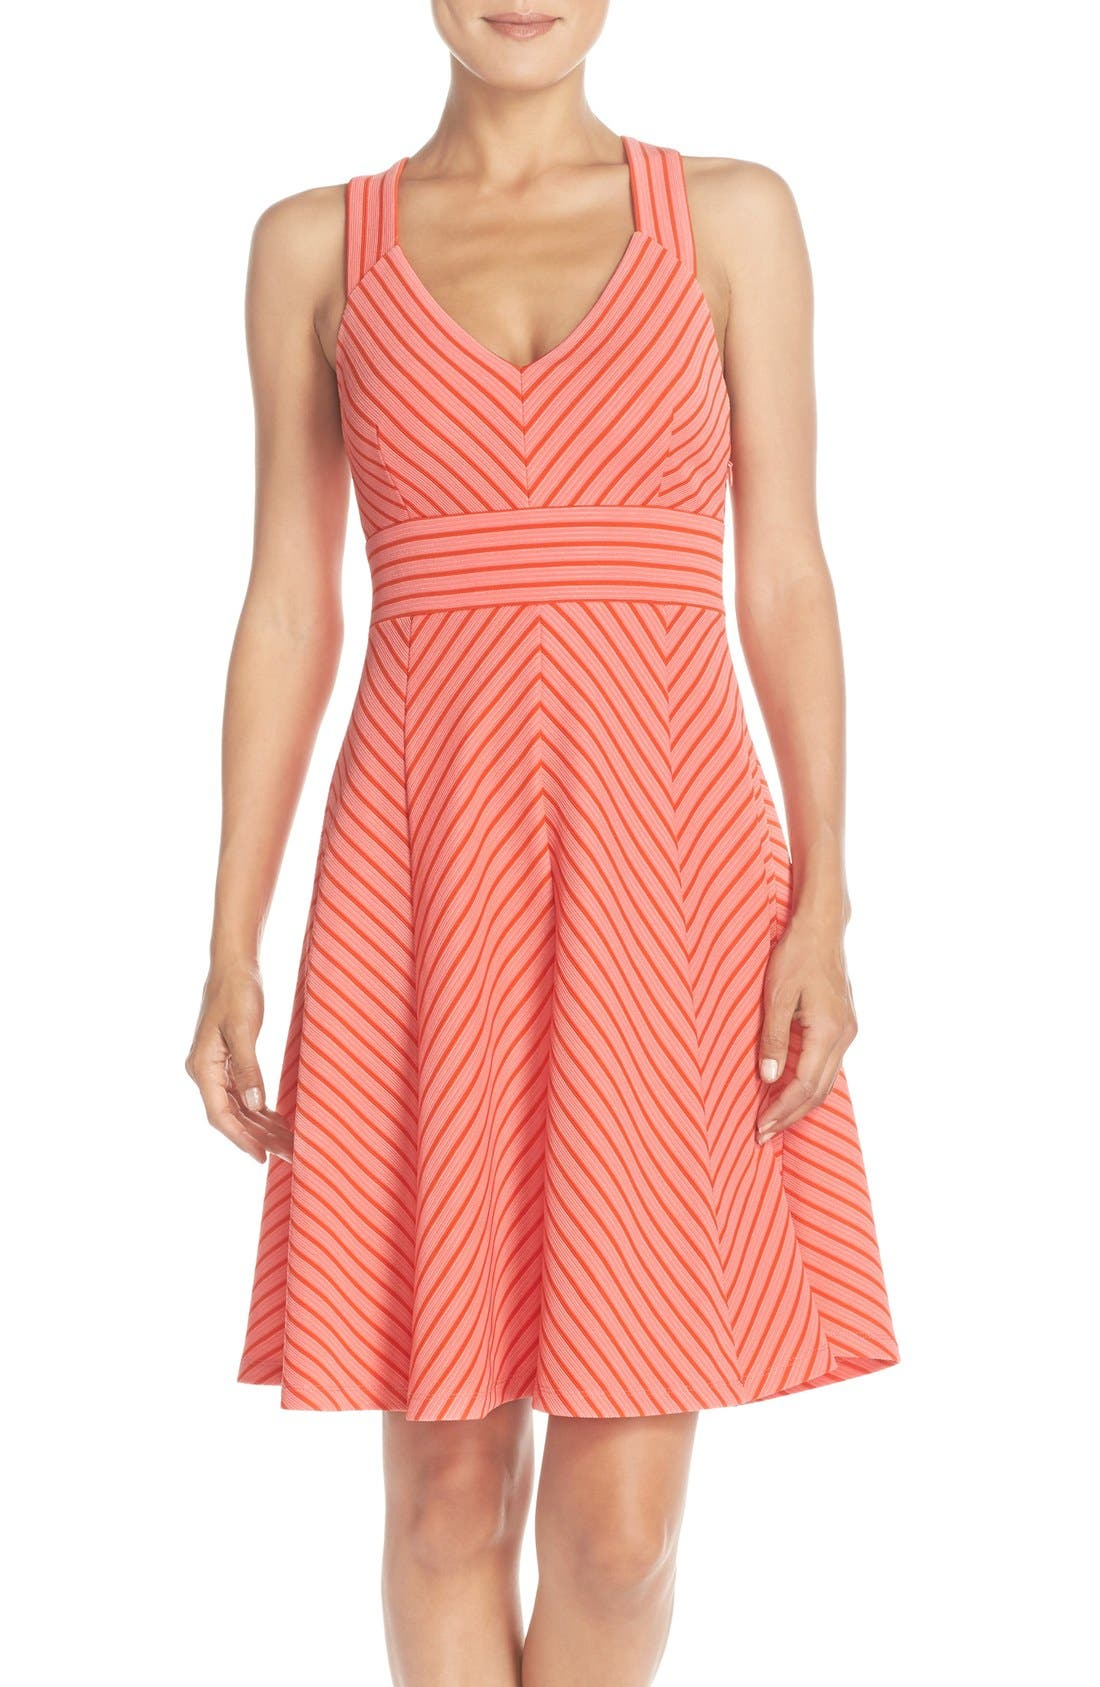 Alternate Image 1 Selected - Adrianna Papell Stripe Ottoman Knit Sundress (Regular & Petite)